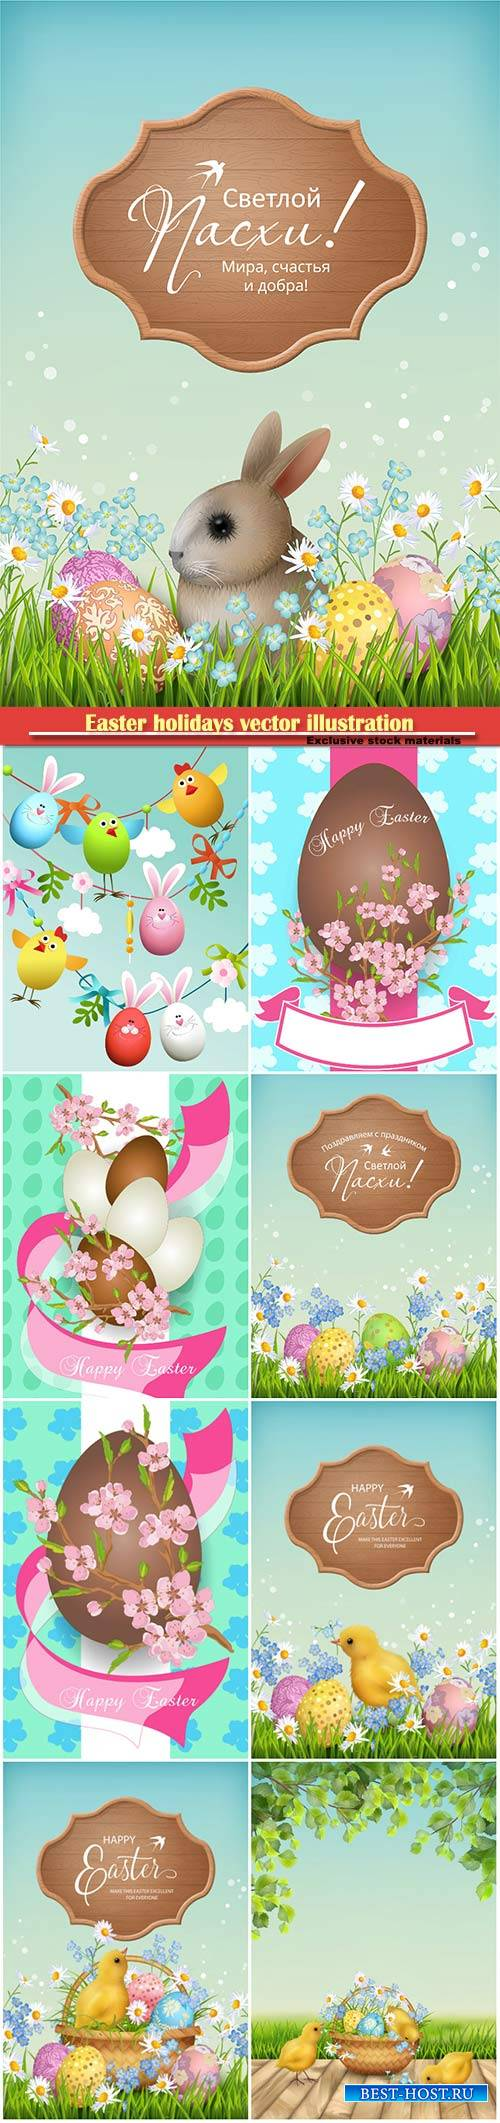 Easter holidays vector illustration # 6